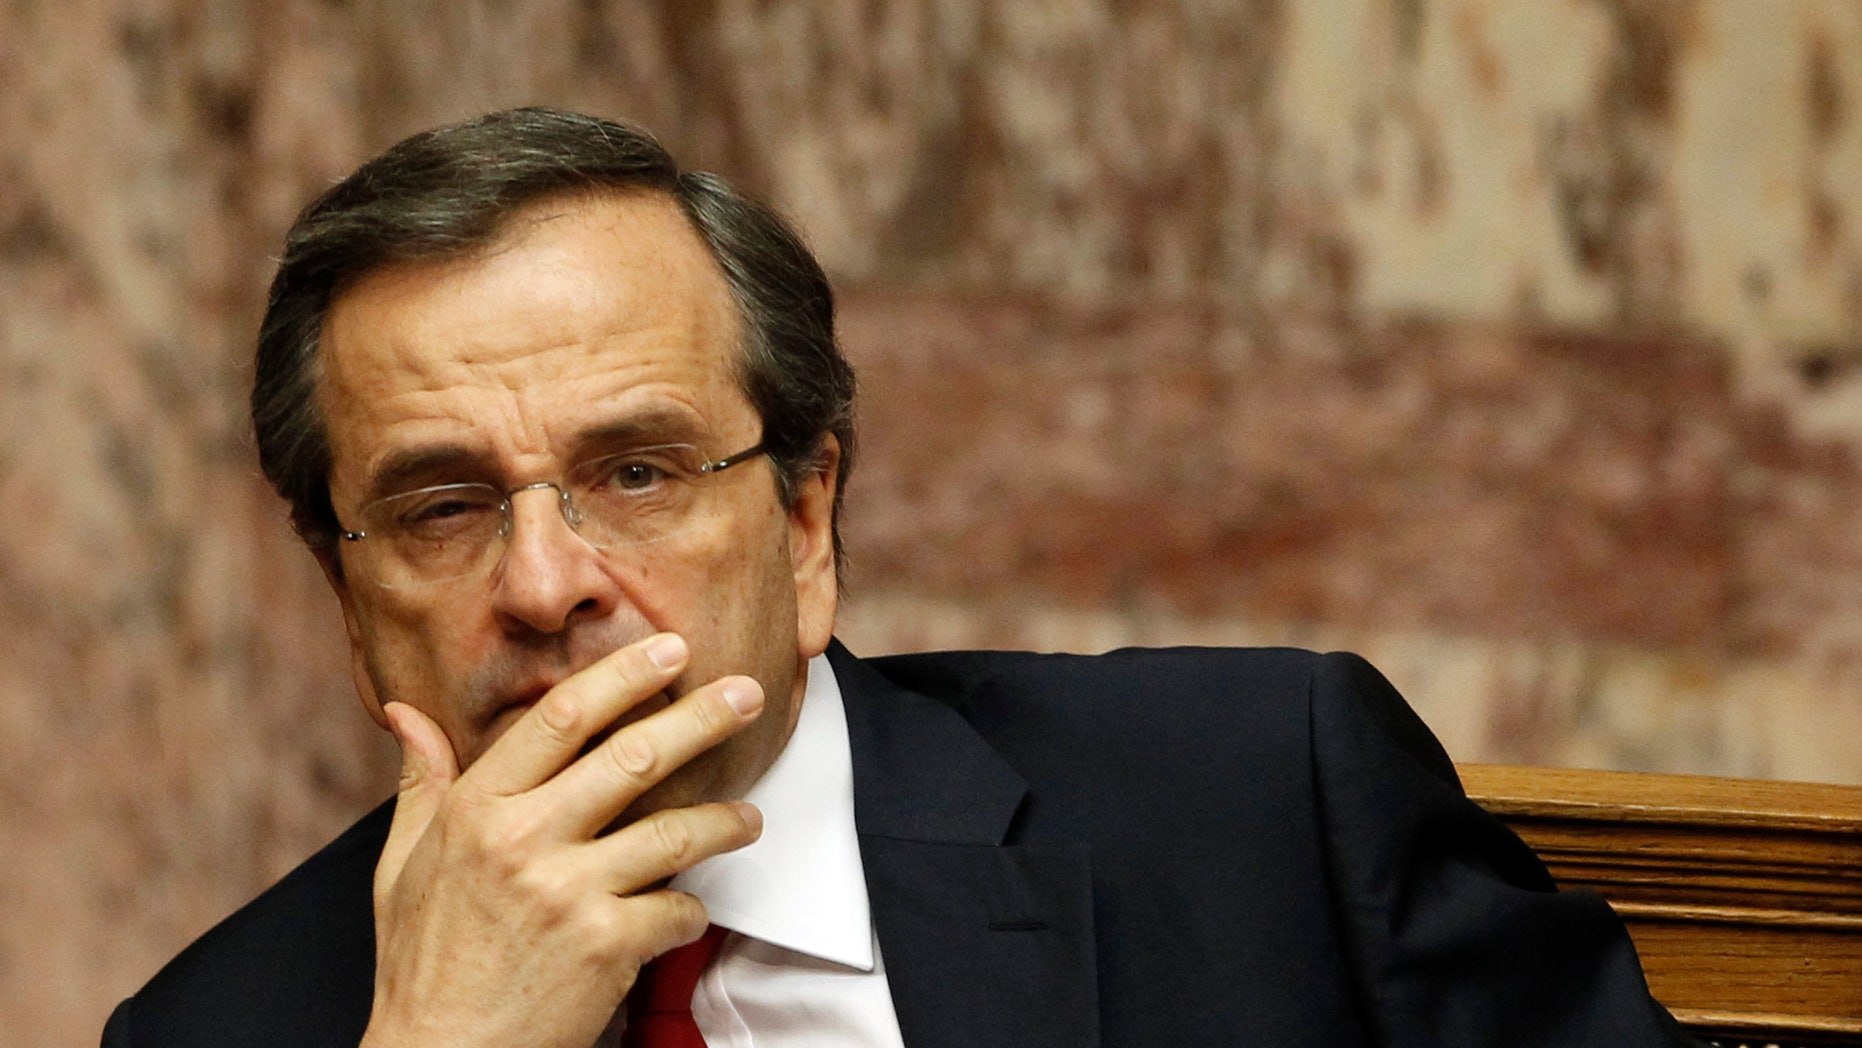 Greek Prime Minister Antonis Samaras looks on during a debate on the new government's policy agenda before staging a vote of confidence  at the parliament in Athens, late Sunday July 8, 2012. (AP Photo/Kostas Tsironis)